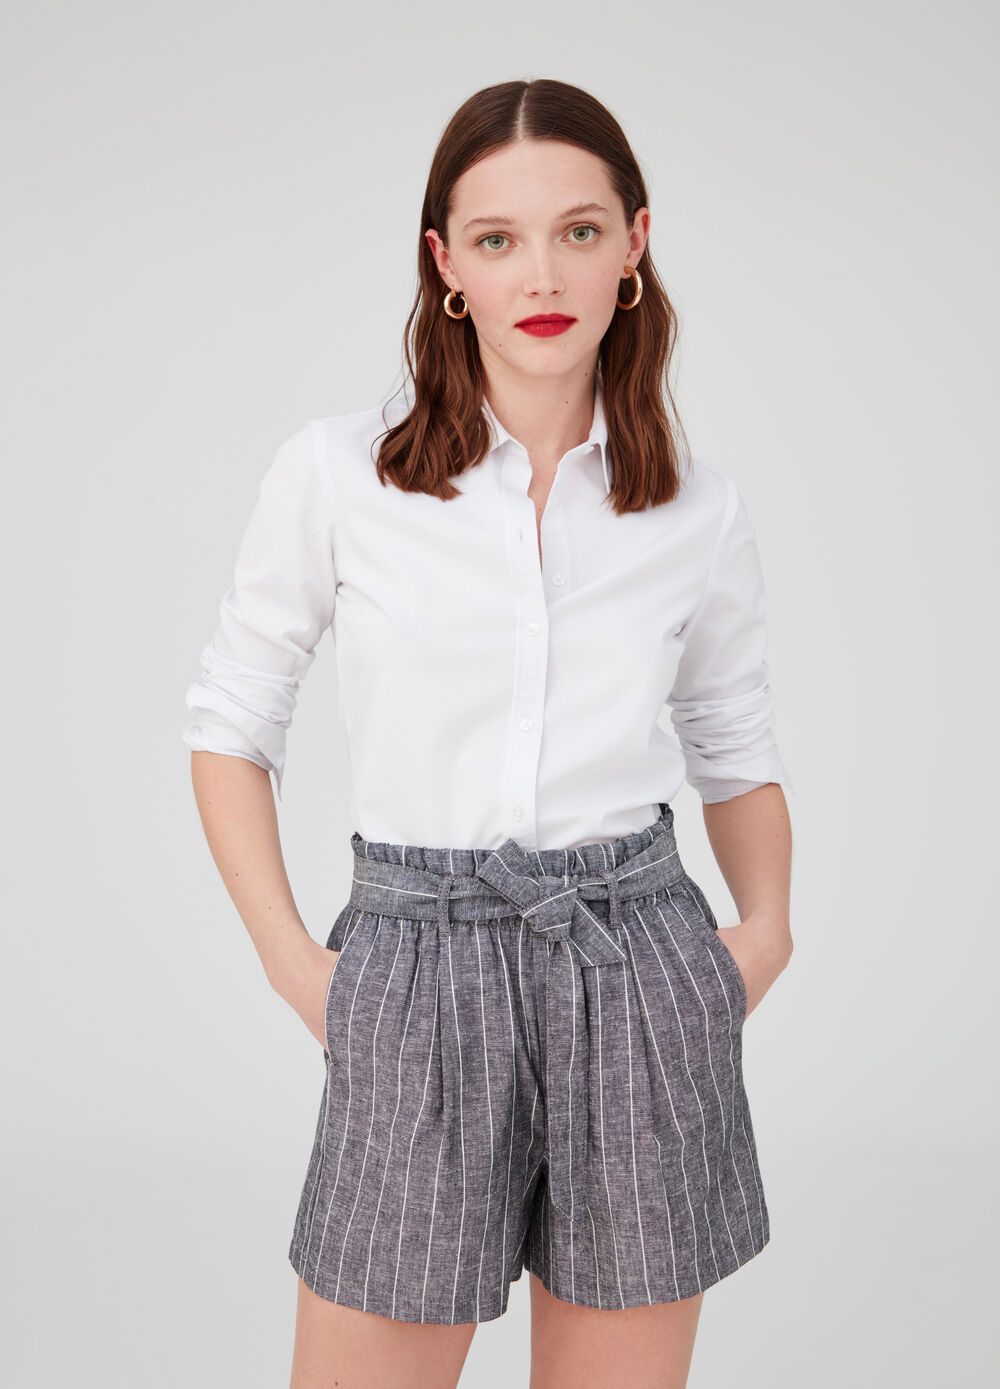 Wide high-waisted shorts in striped cotton and linen